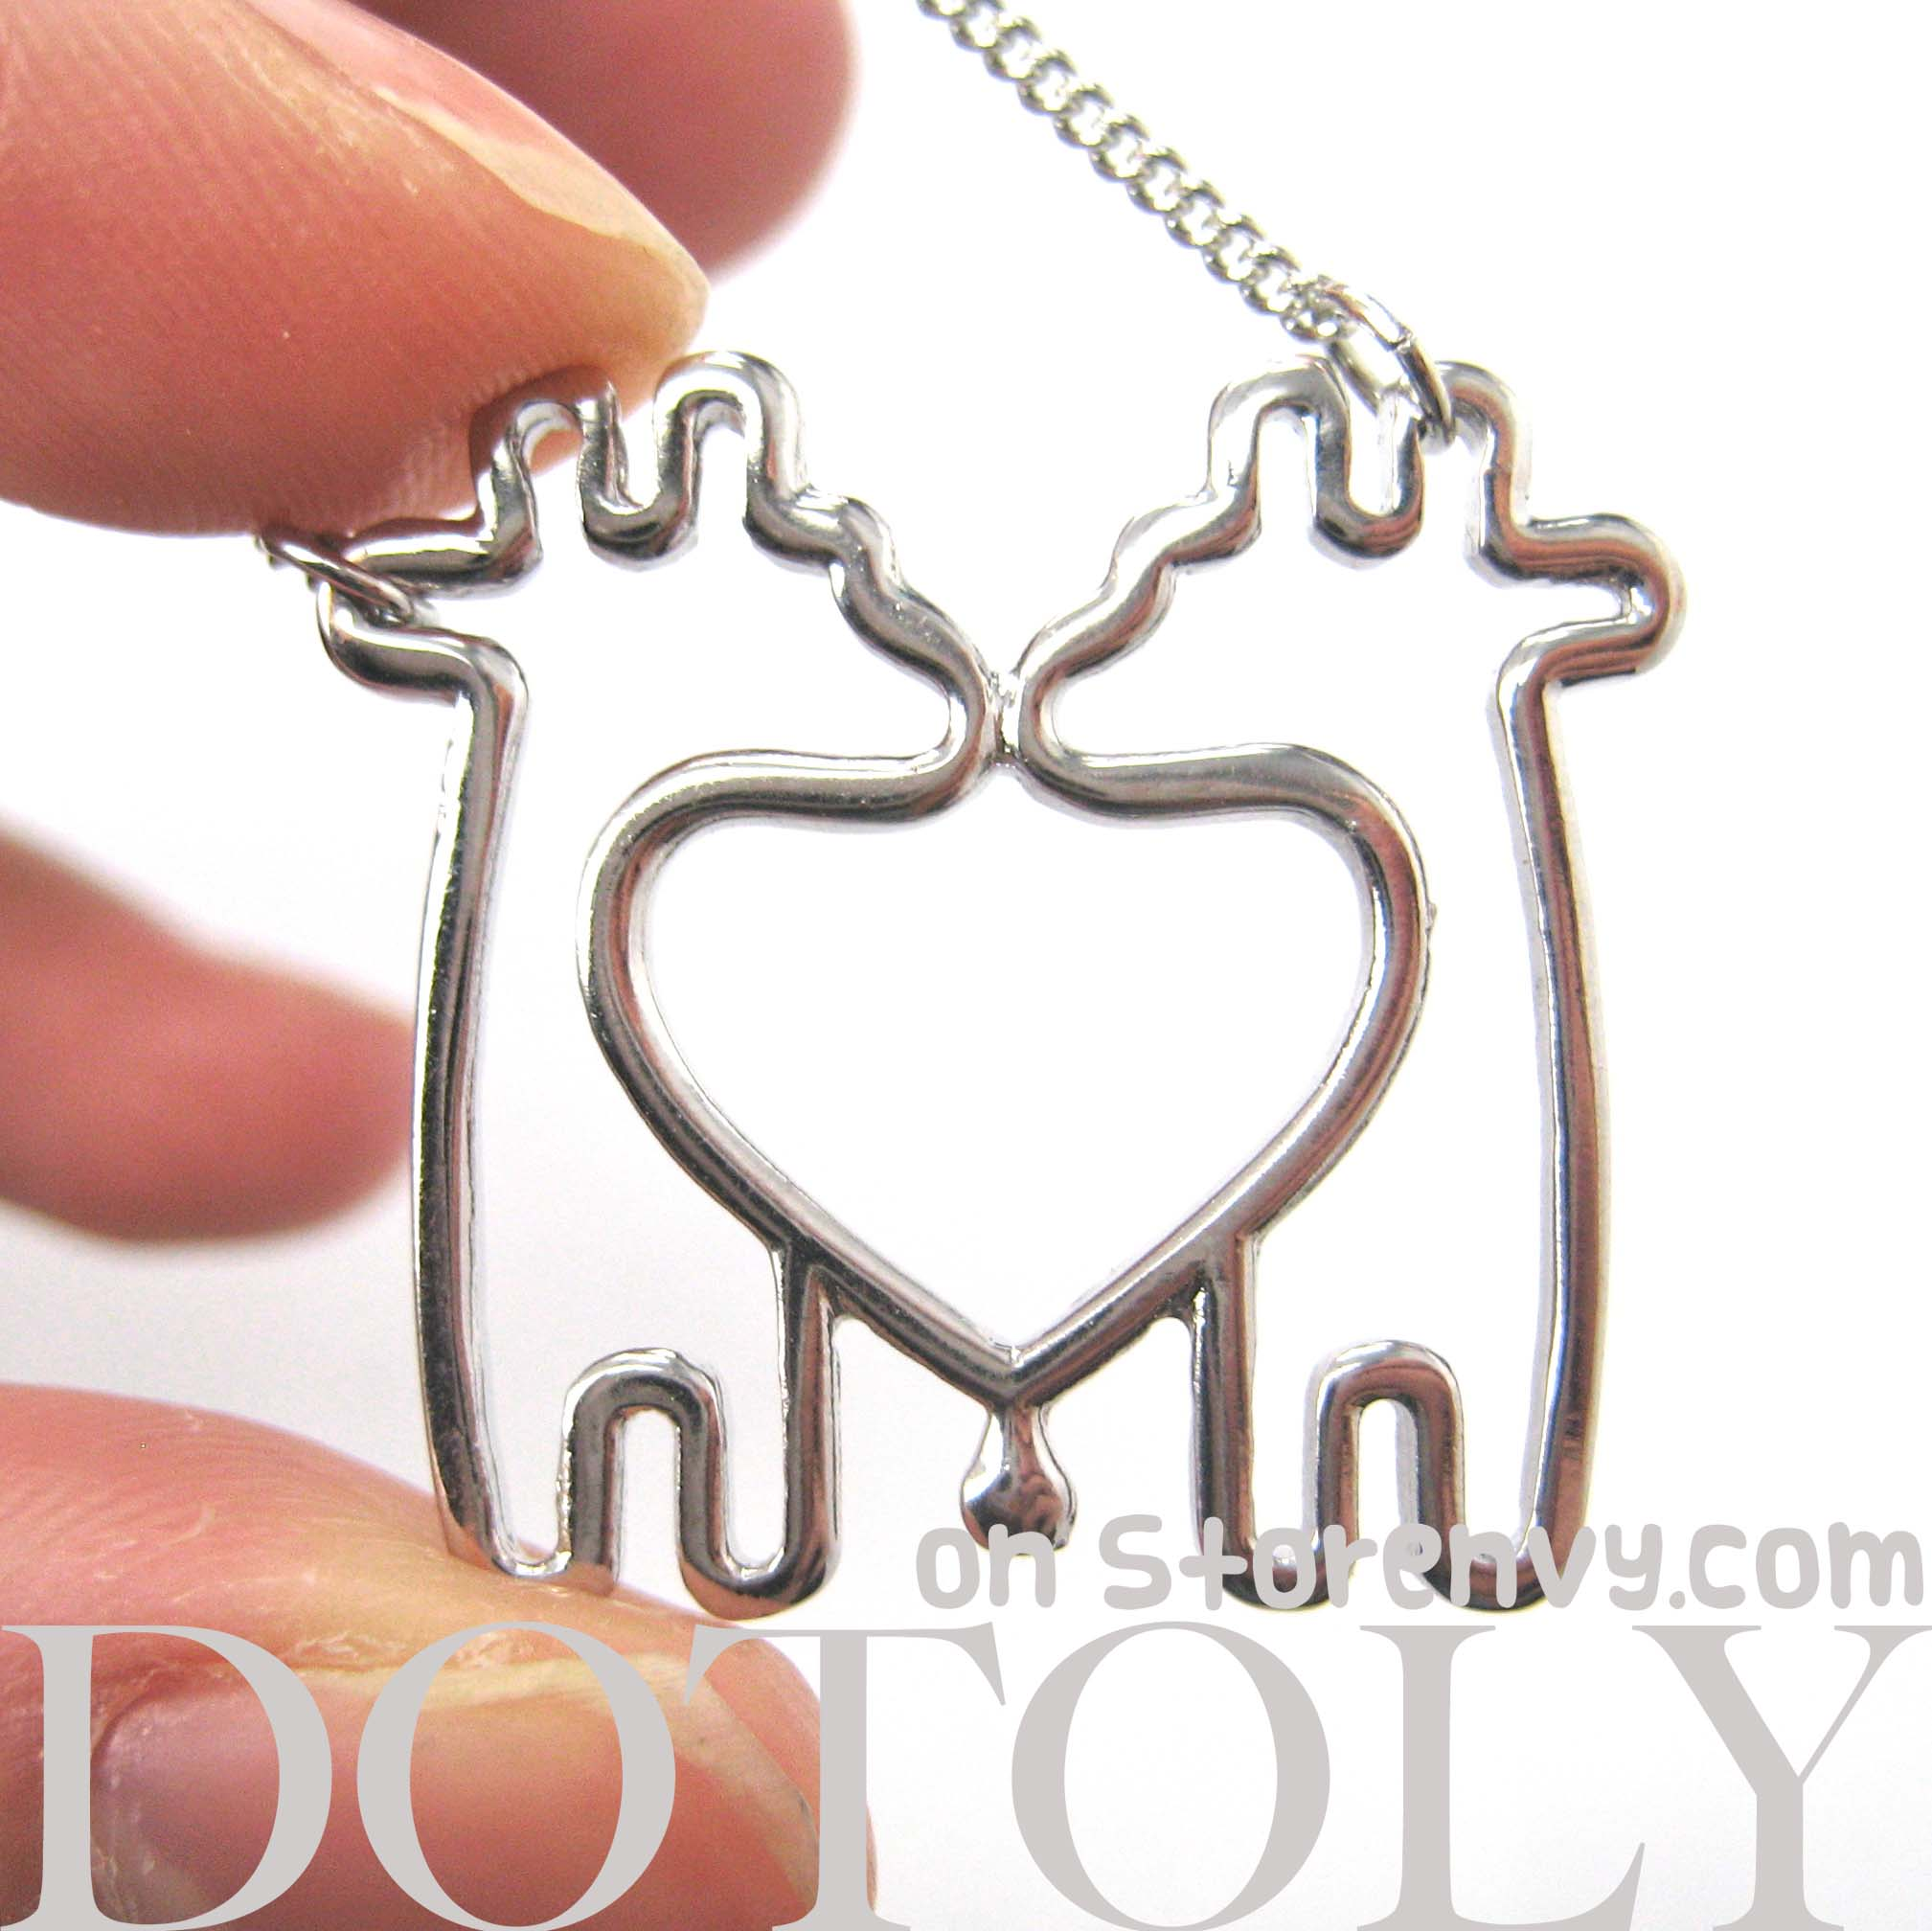 jewelry giraffe love mother trusta for women pendant s products pb apple wholesale vintage jelly and diy new necklace silver necklaces